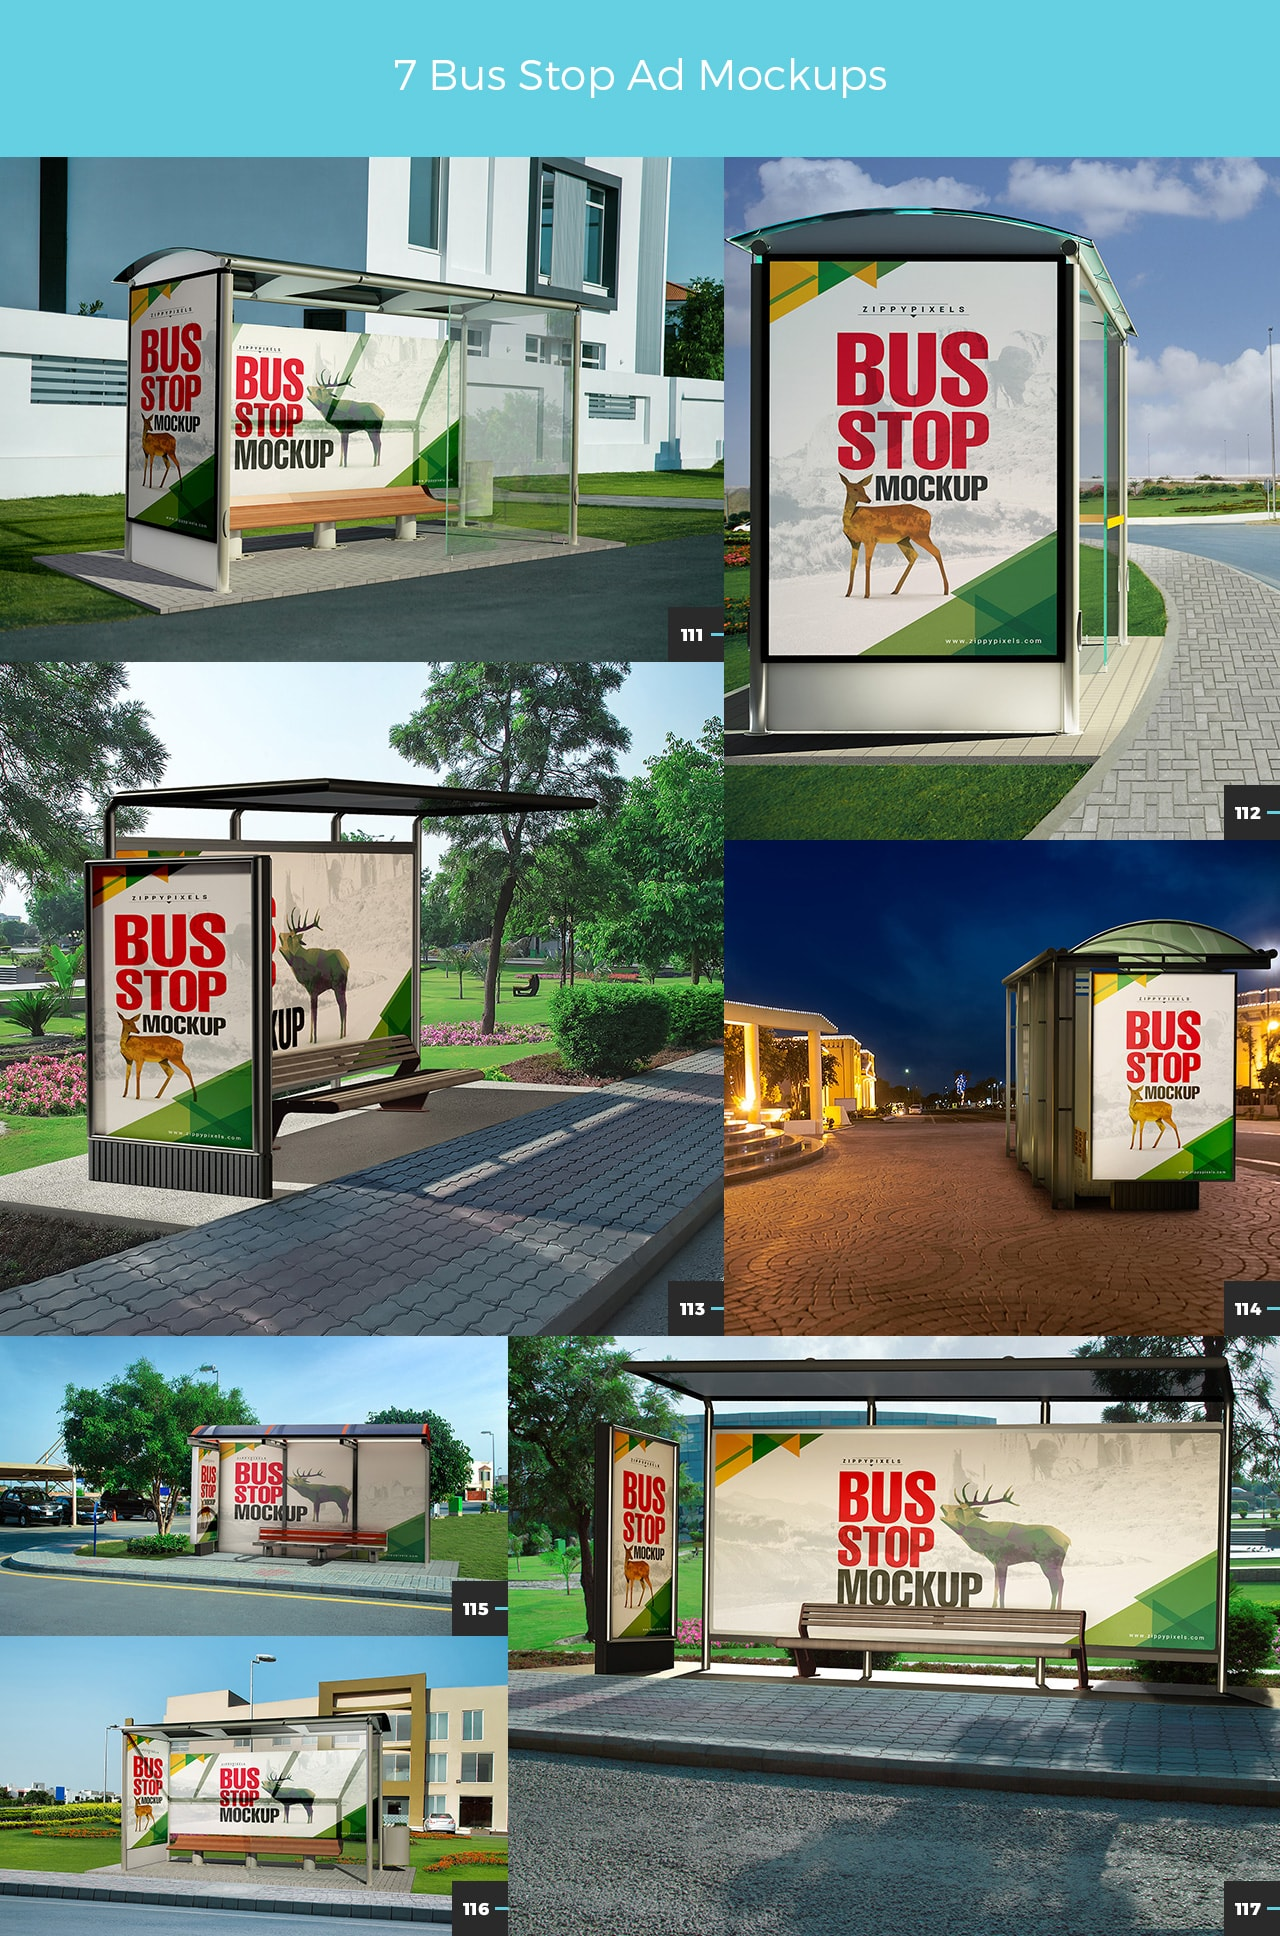 06 7 BUS STOP AD MOCKUPS